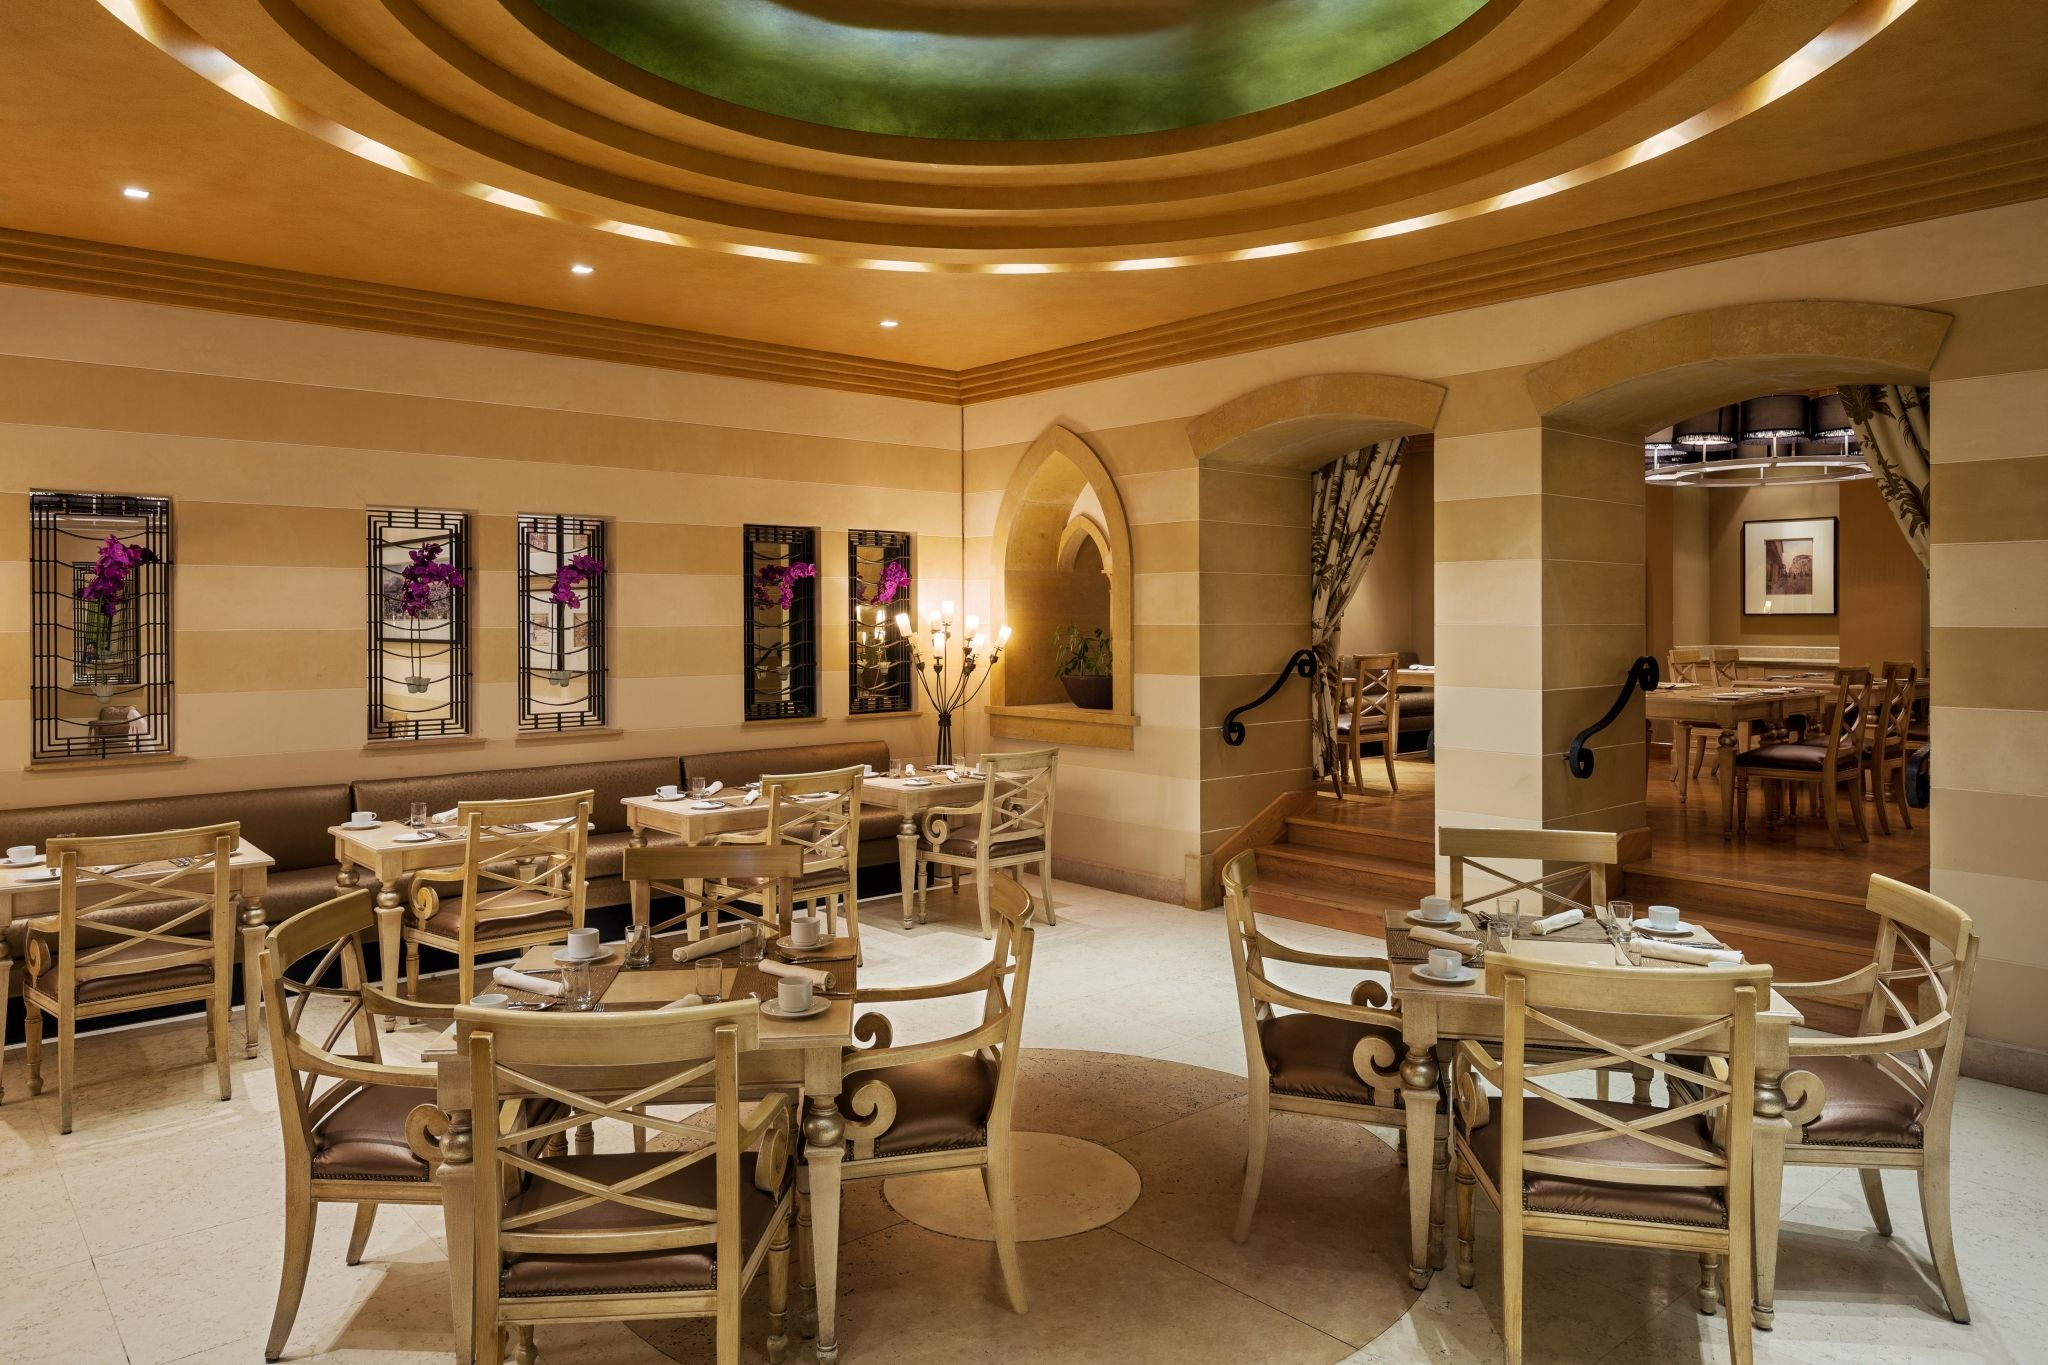 Fayrouz International Restaurant in Dammam